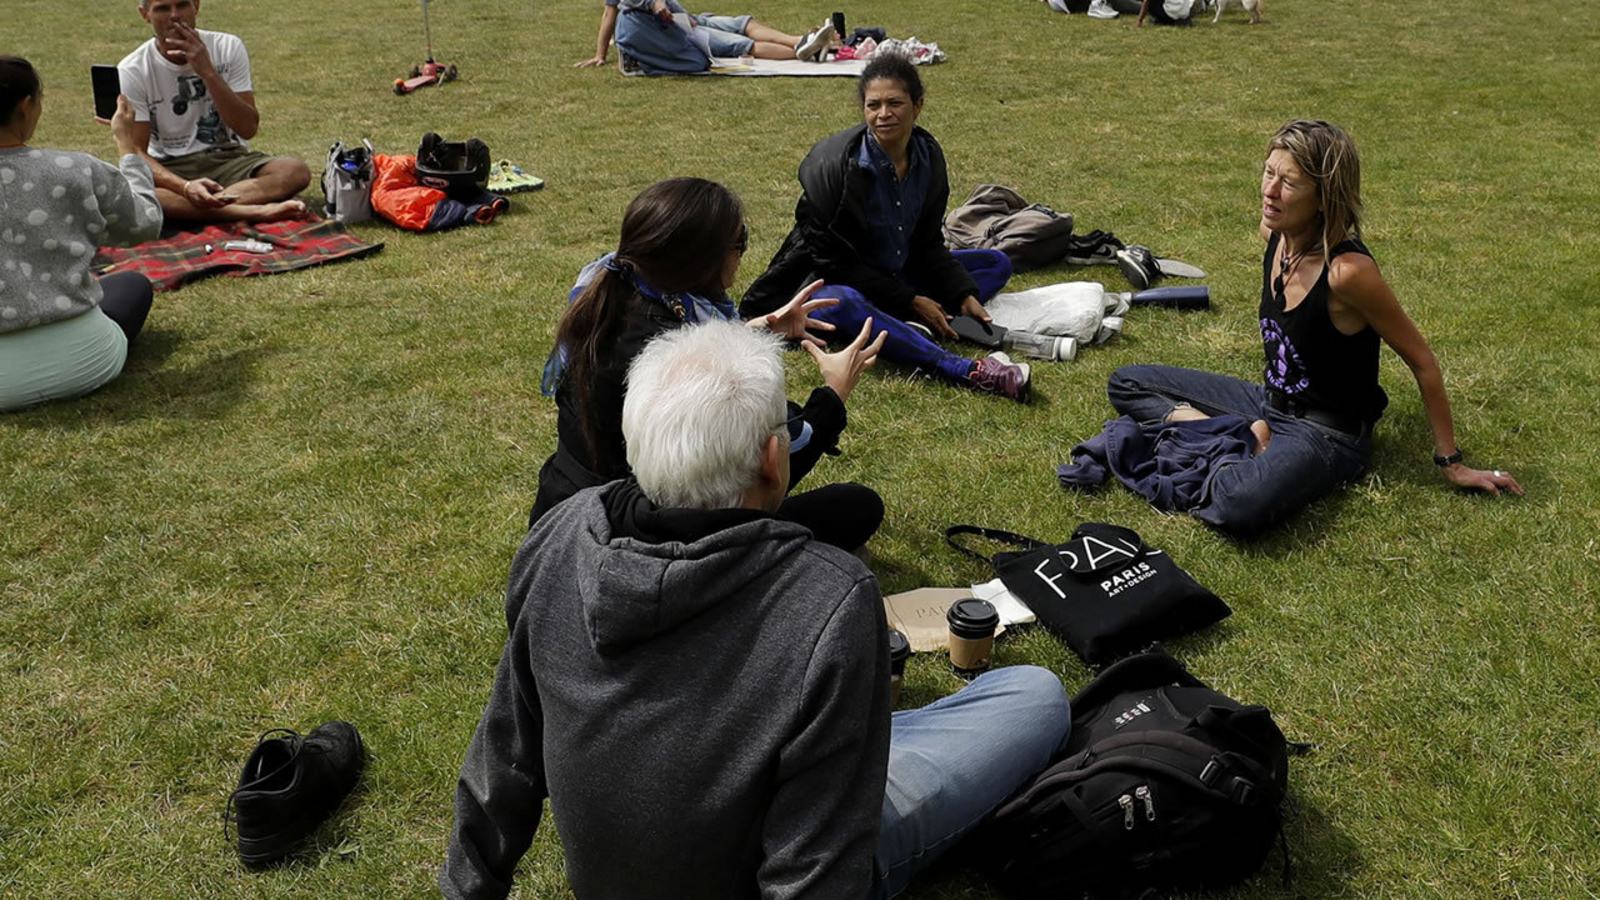 Coronavirus: Alameda County modifies stay-at-home order to allow 'social bubbles'